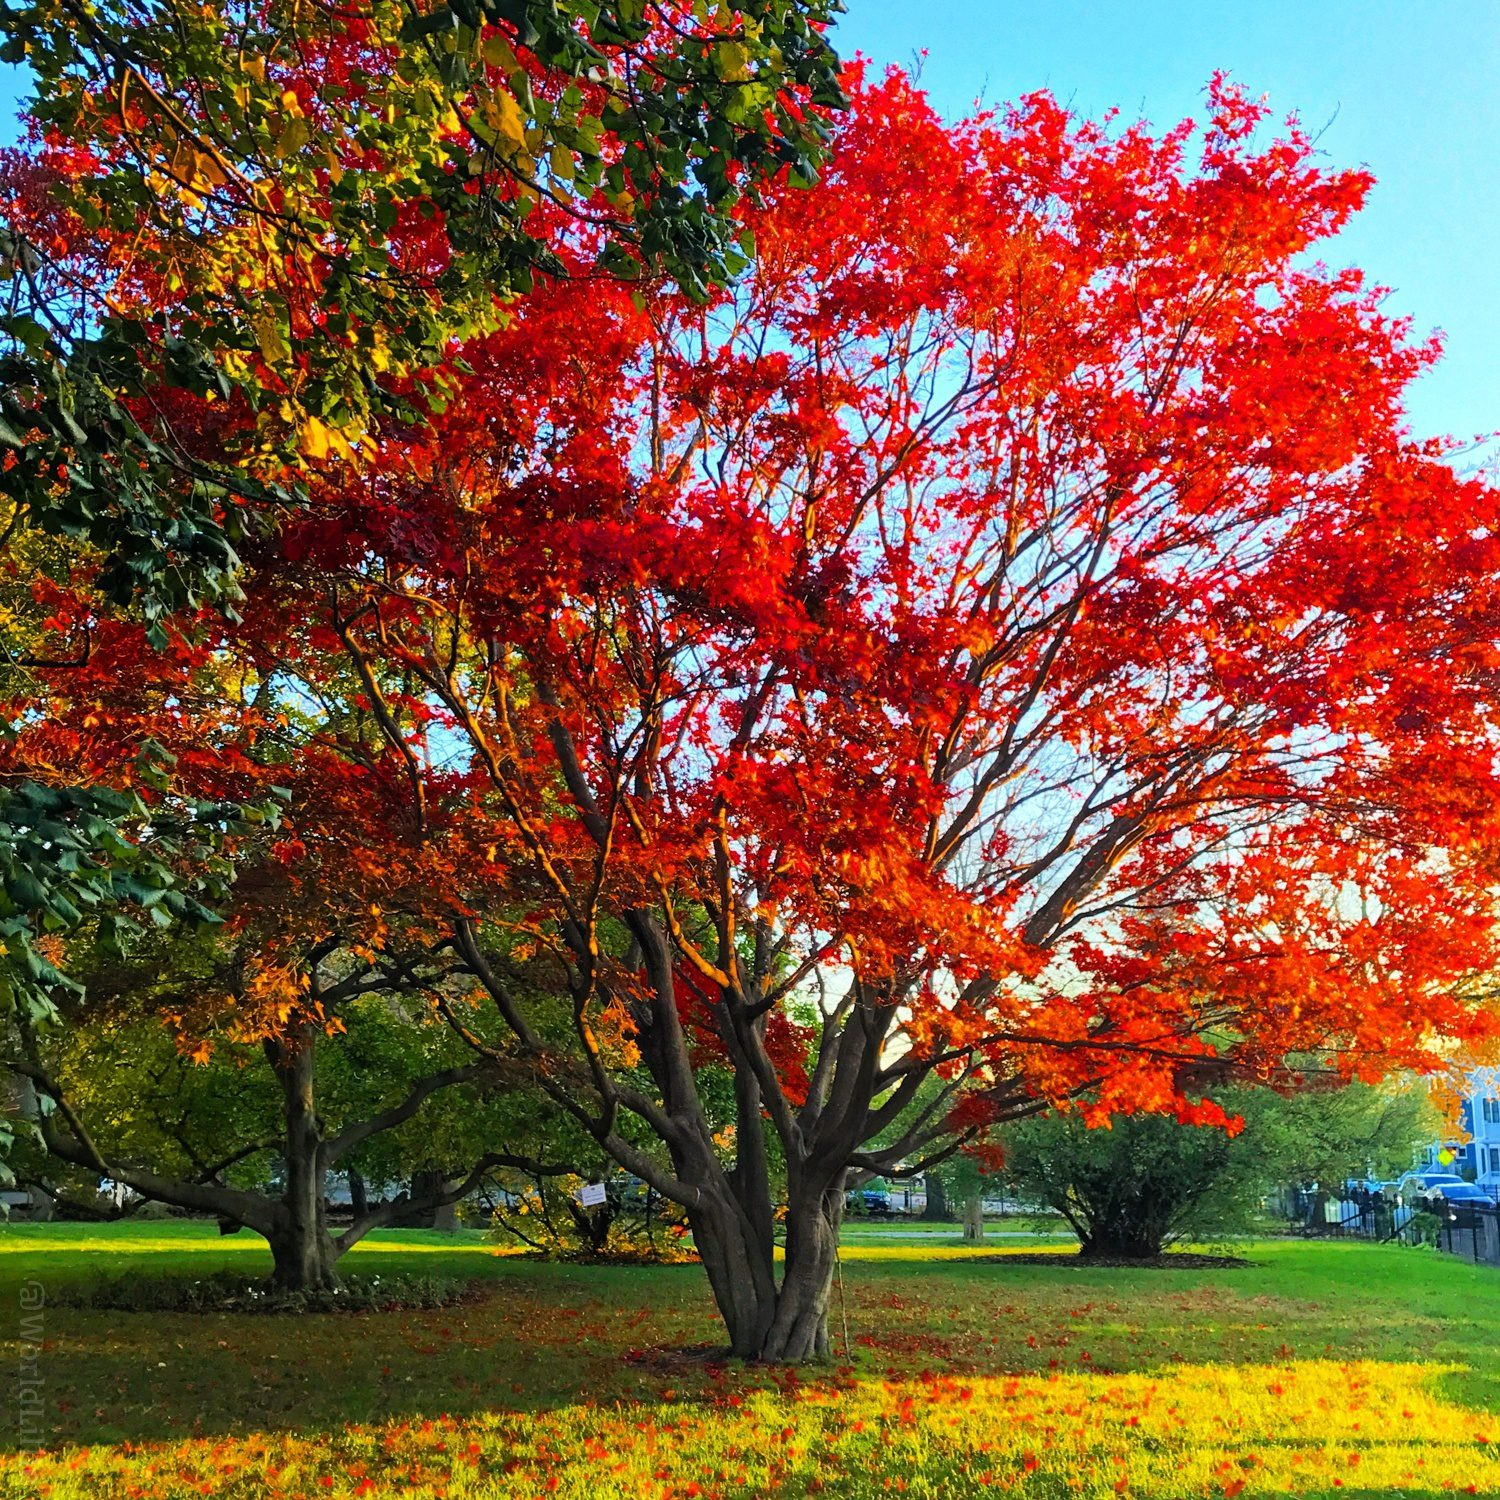 Glorious bright red autumn leaves in Boston.